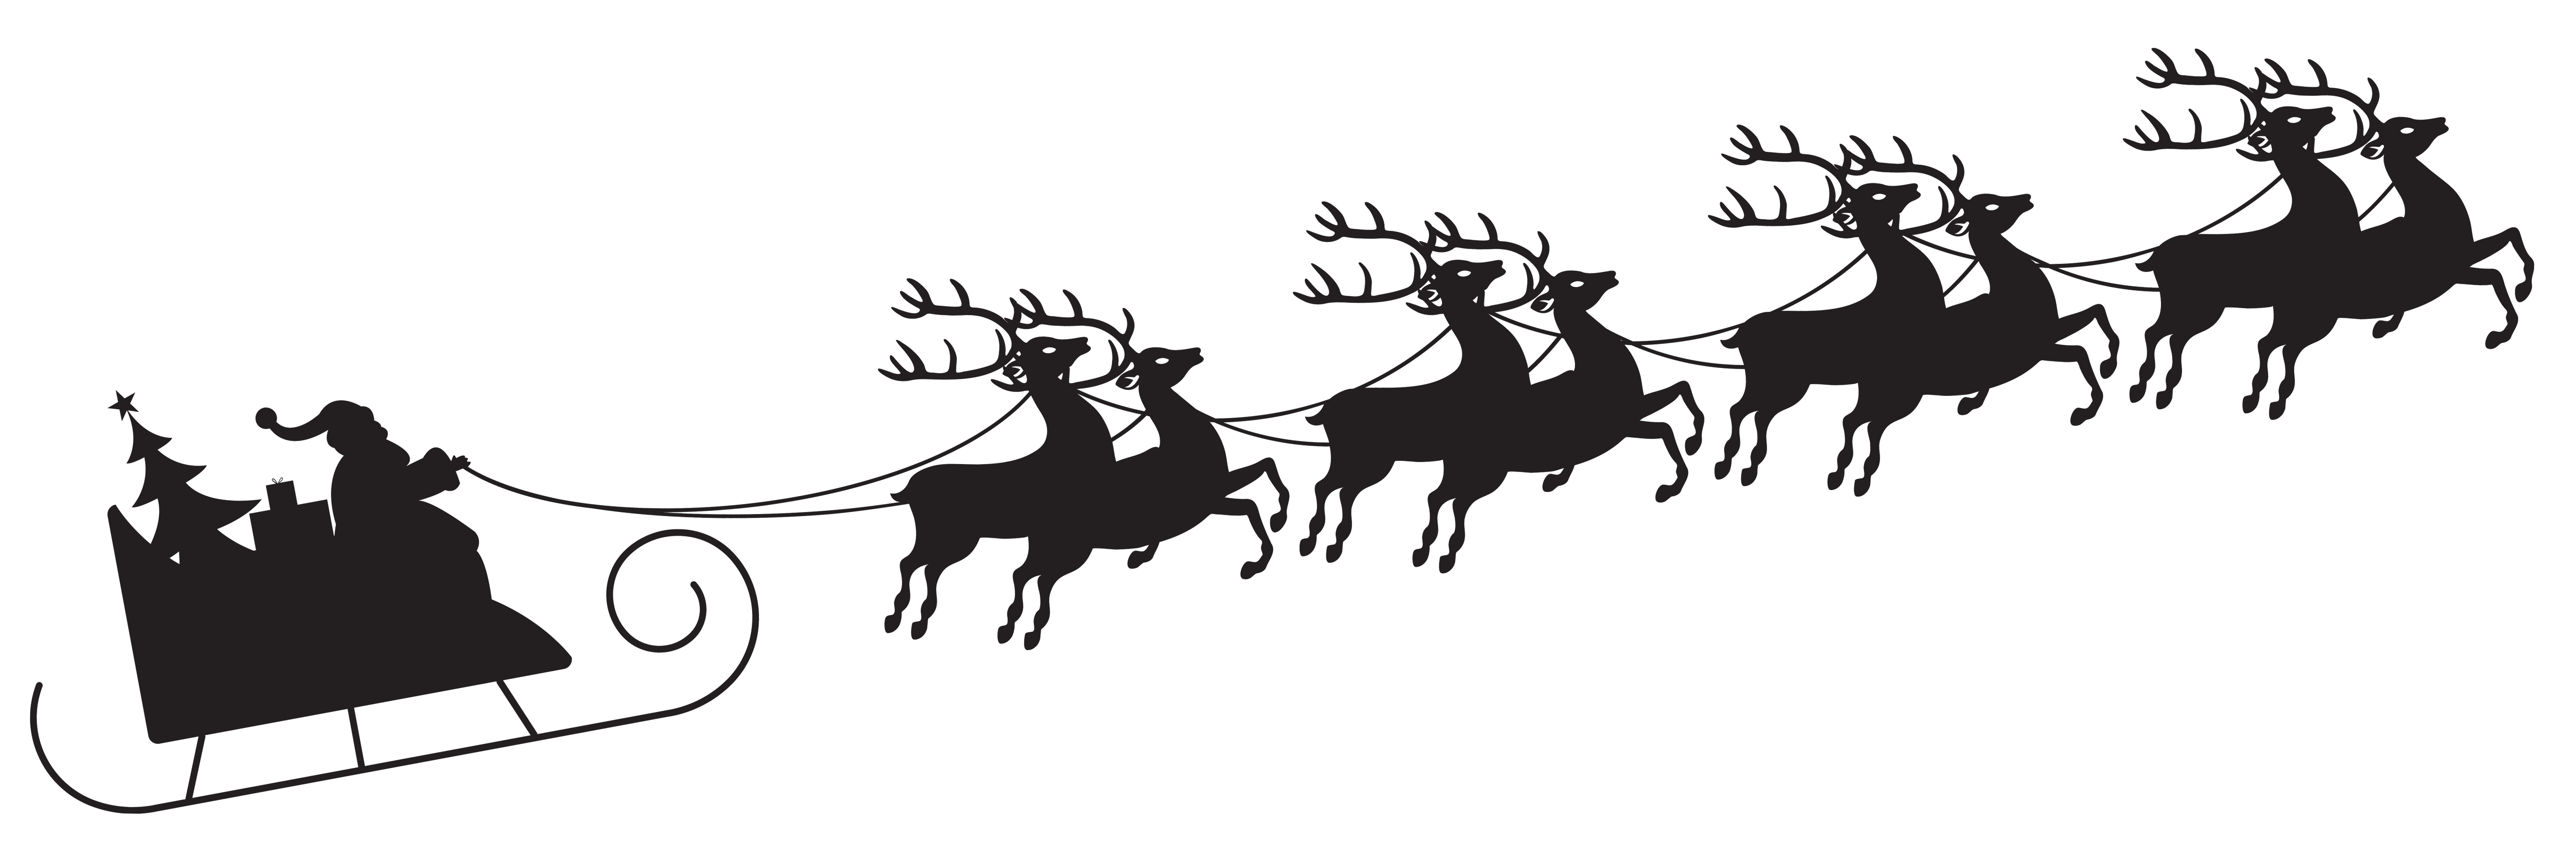 Santa and reindeer silhouette png. With sleigh transparent clip